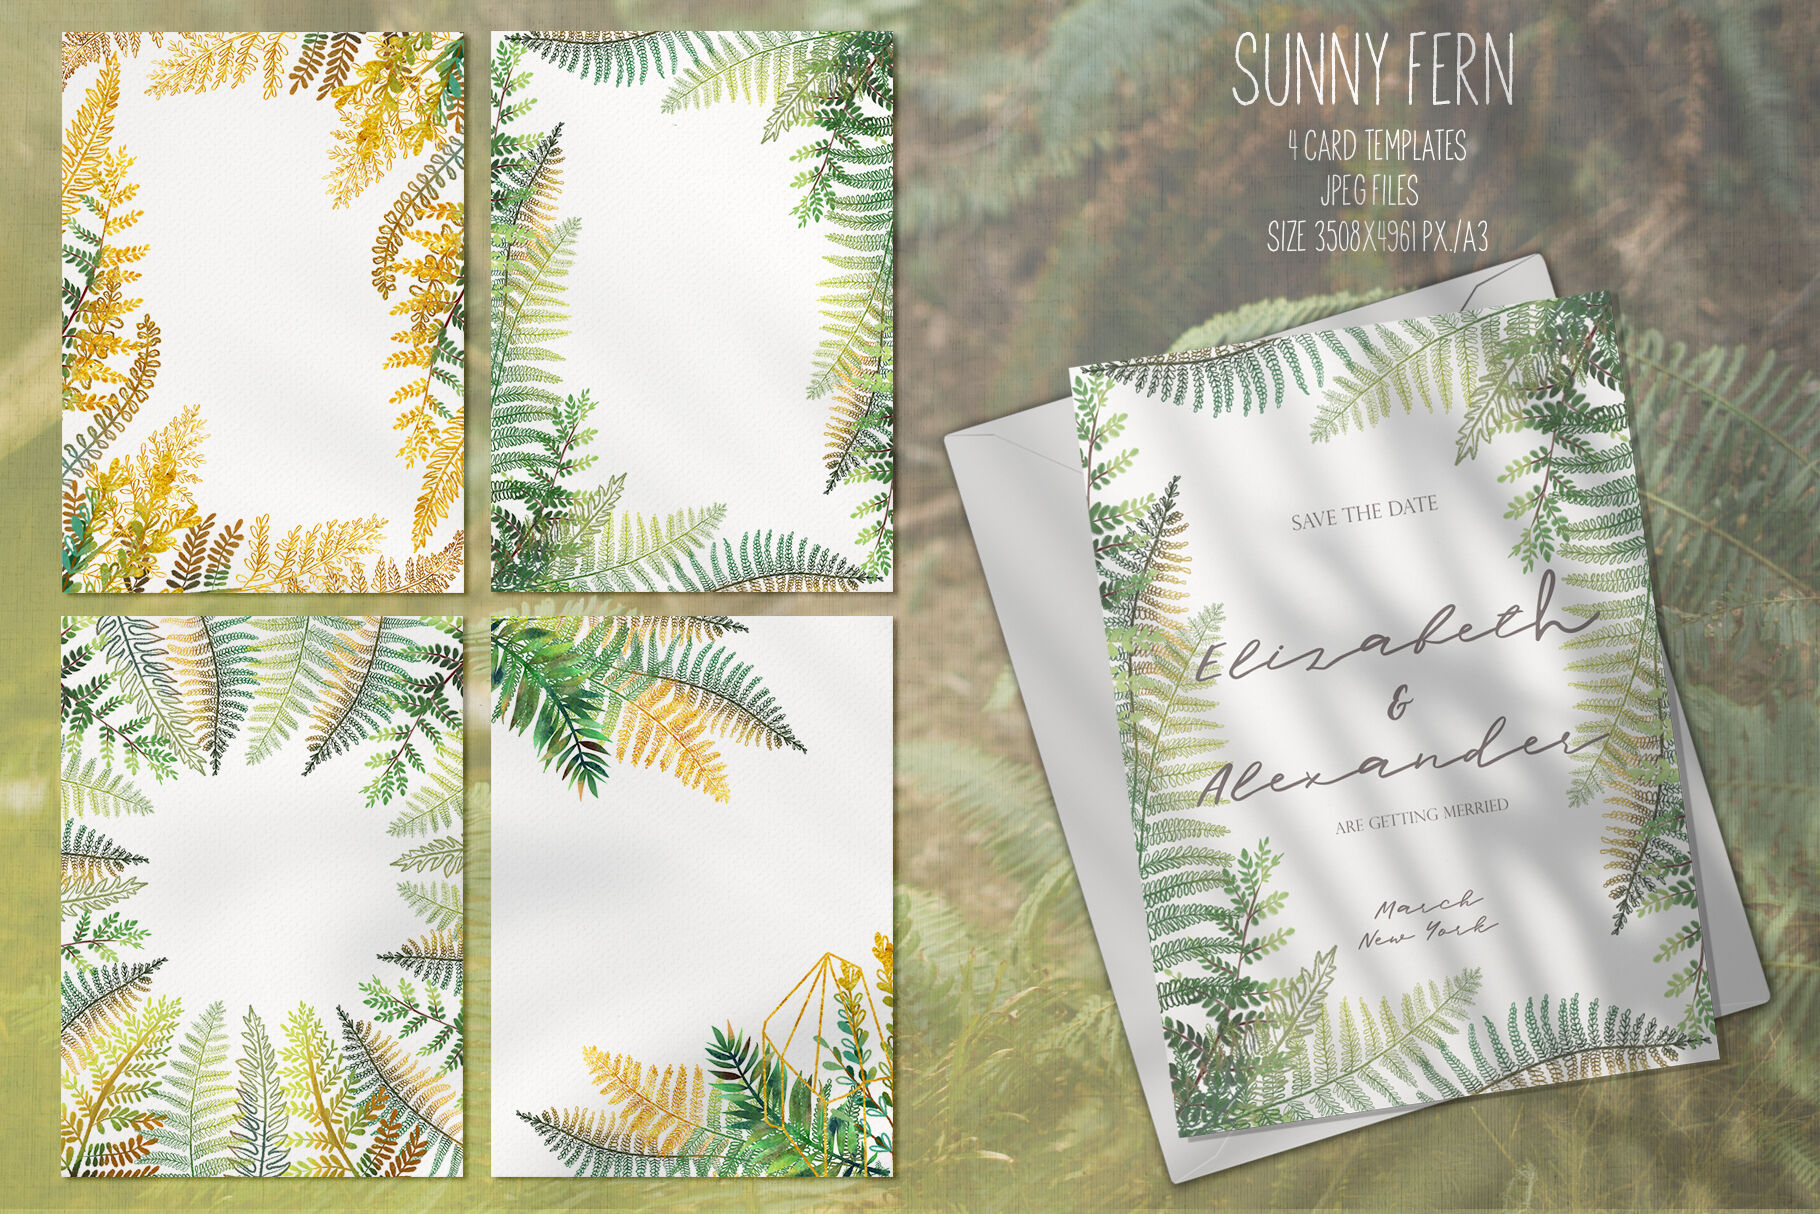 Sunny Fern Tropical Forest Collection By Happywatercolorshop